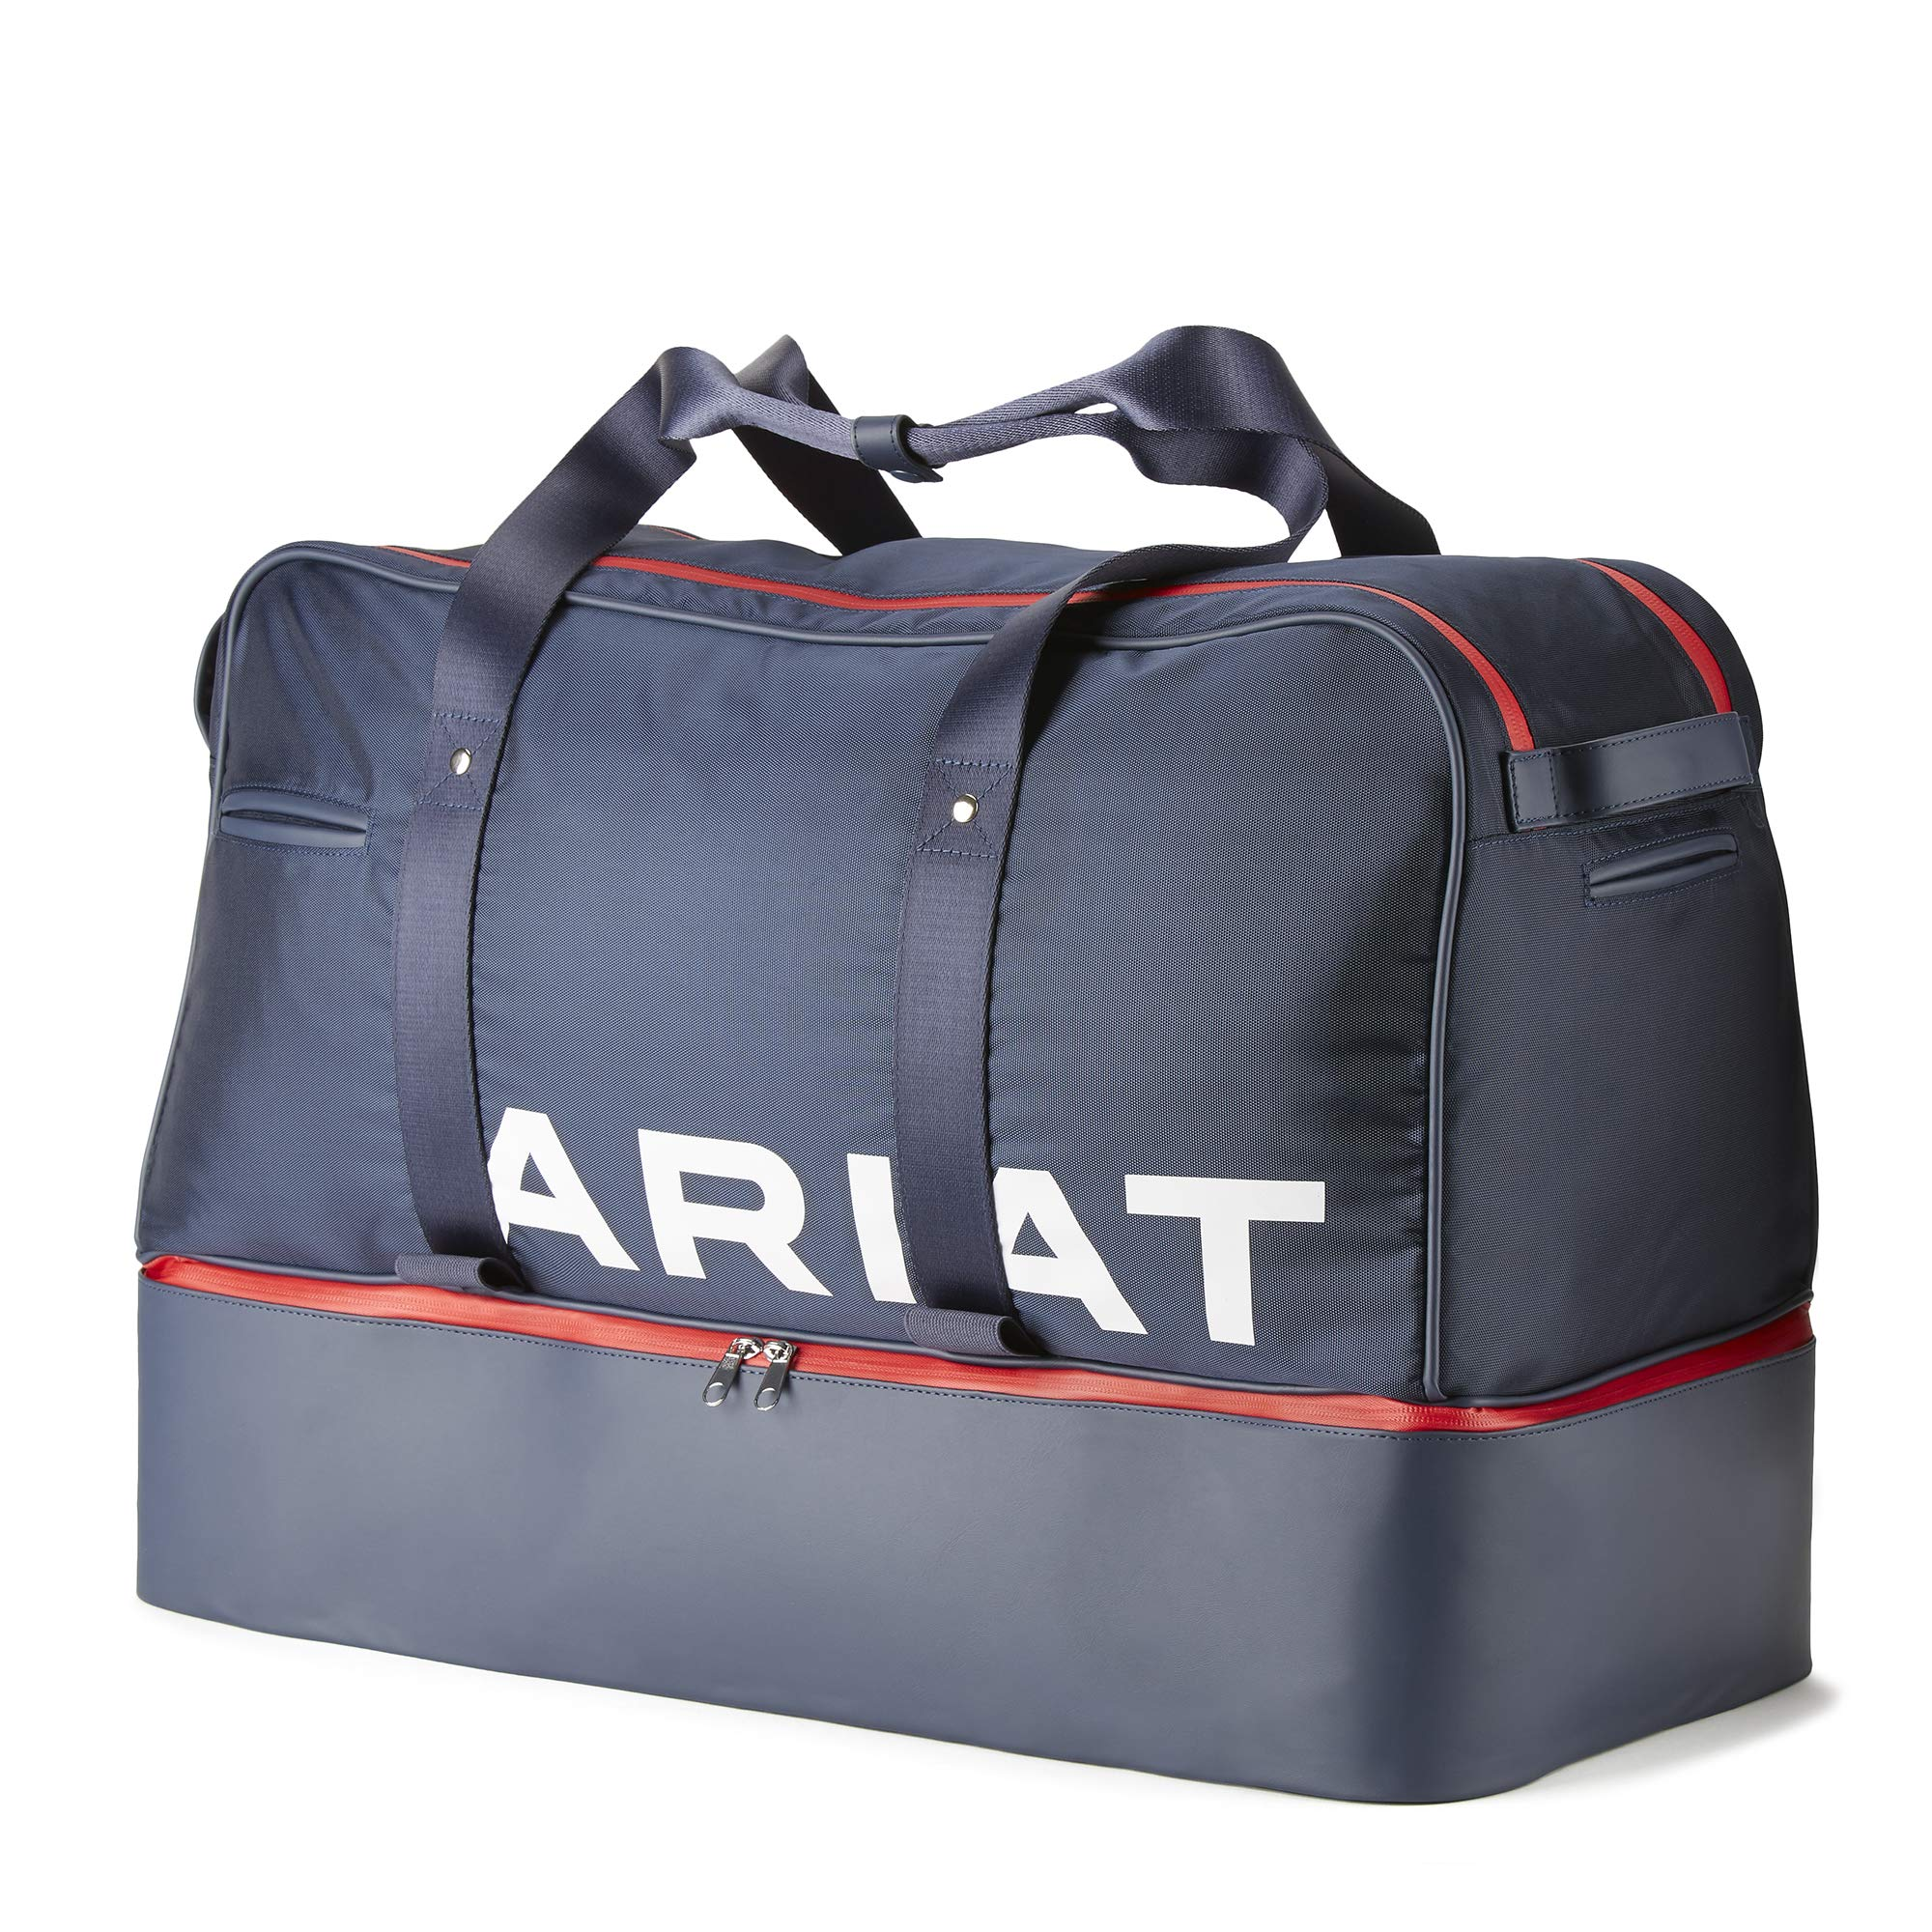 Ariat Unisex Grip Bag Blue Size One Size by ARIAT